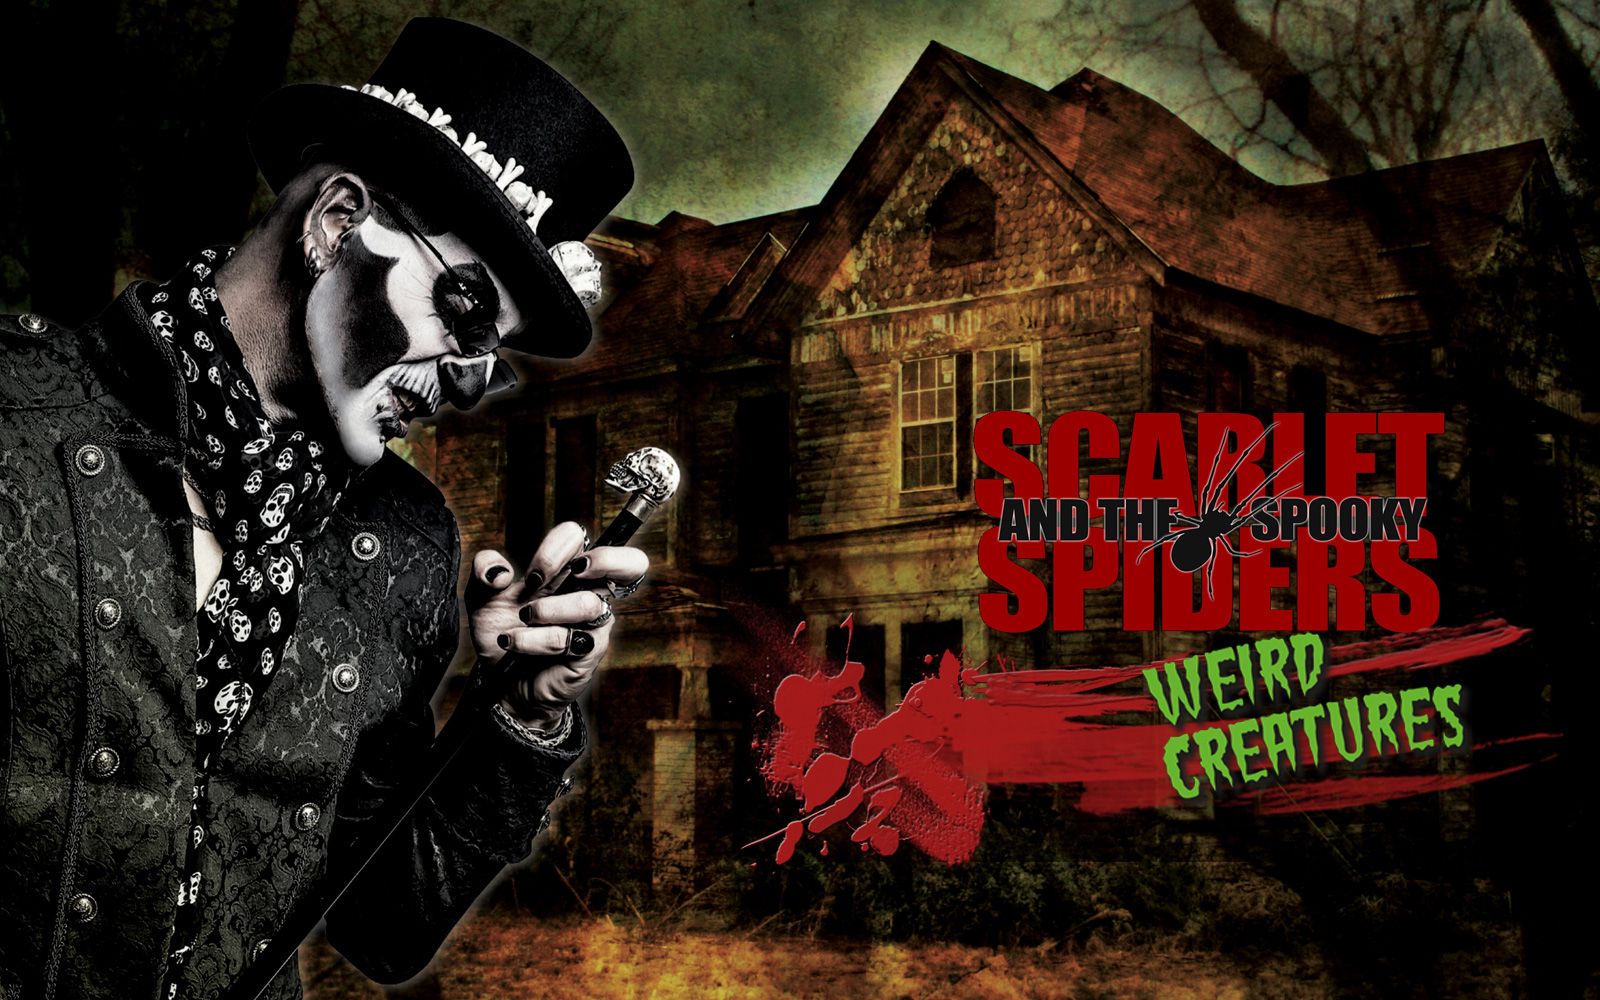 spooky spiders psychobilly horror punk Scarlet spider baron samedi weird creatures new album spooky band website